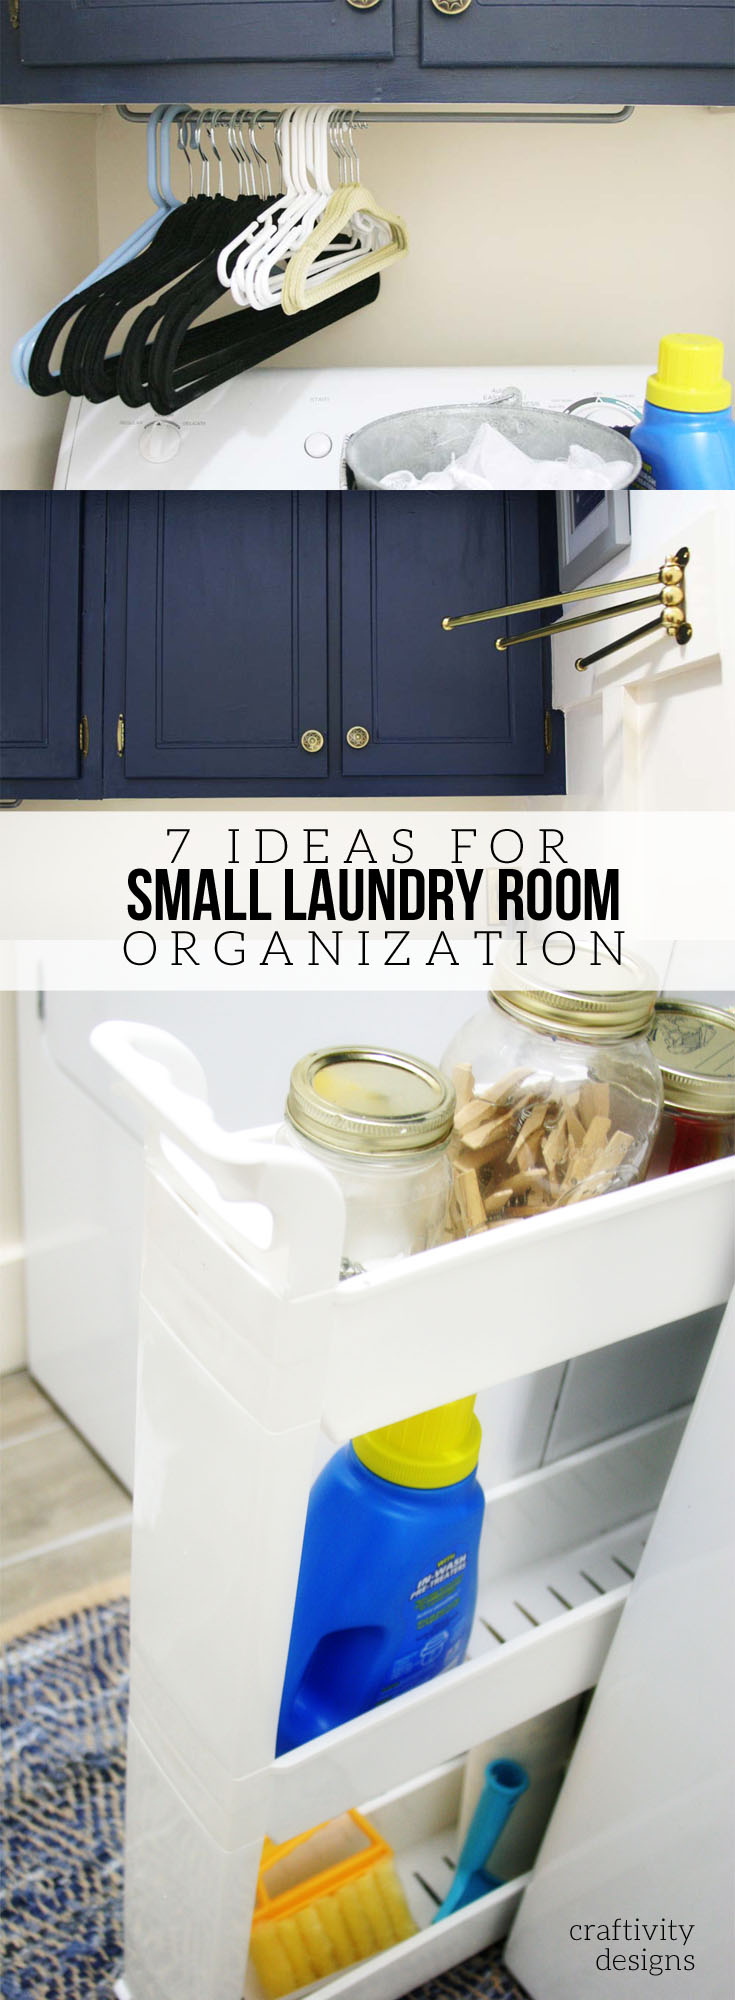 Small laundry room organization craftivity designs Small room organization